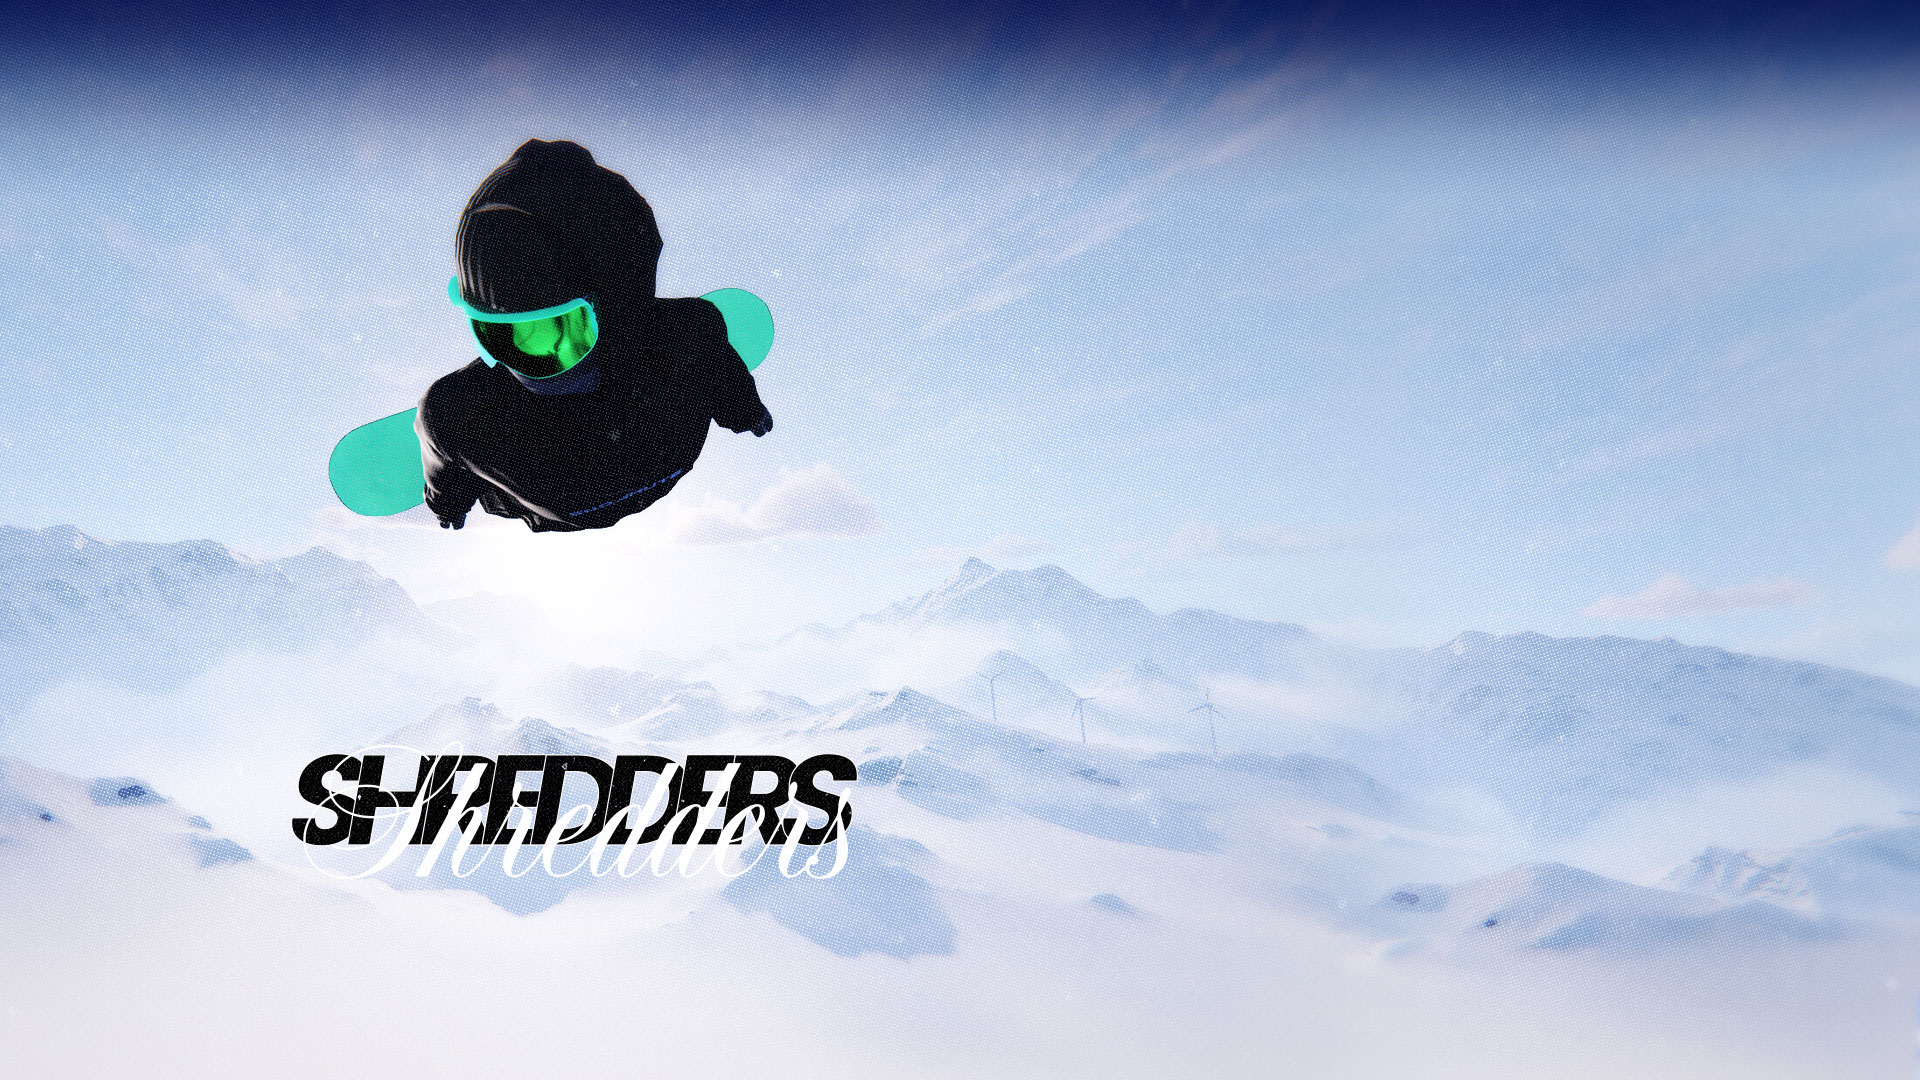 A snowboarder with their hands at their sides flies through the air with mountains in the background.